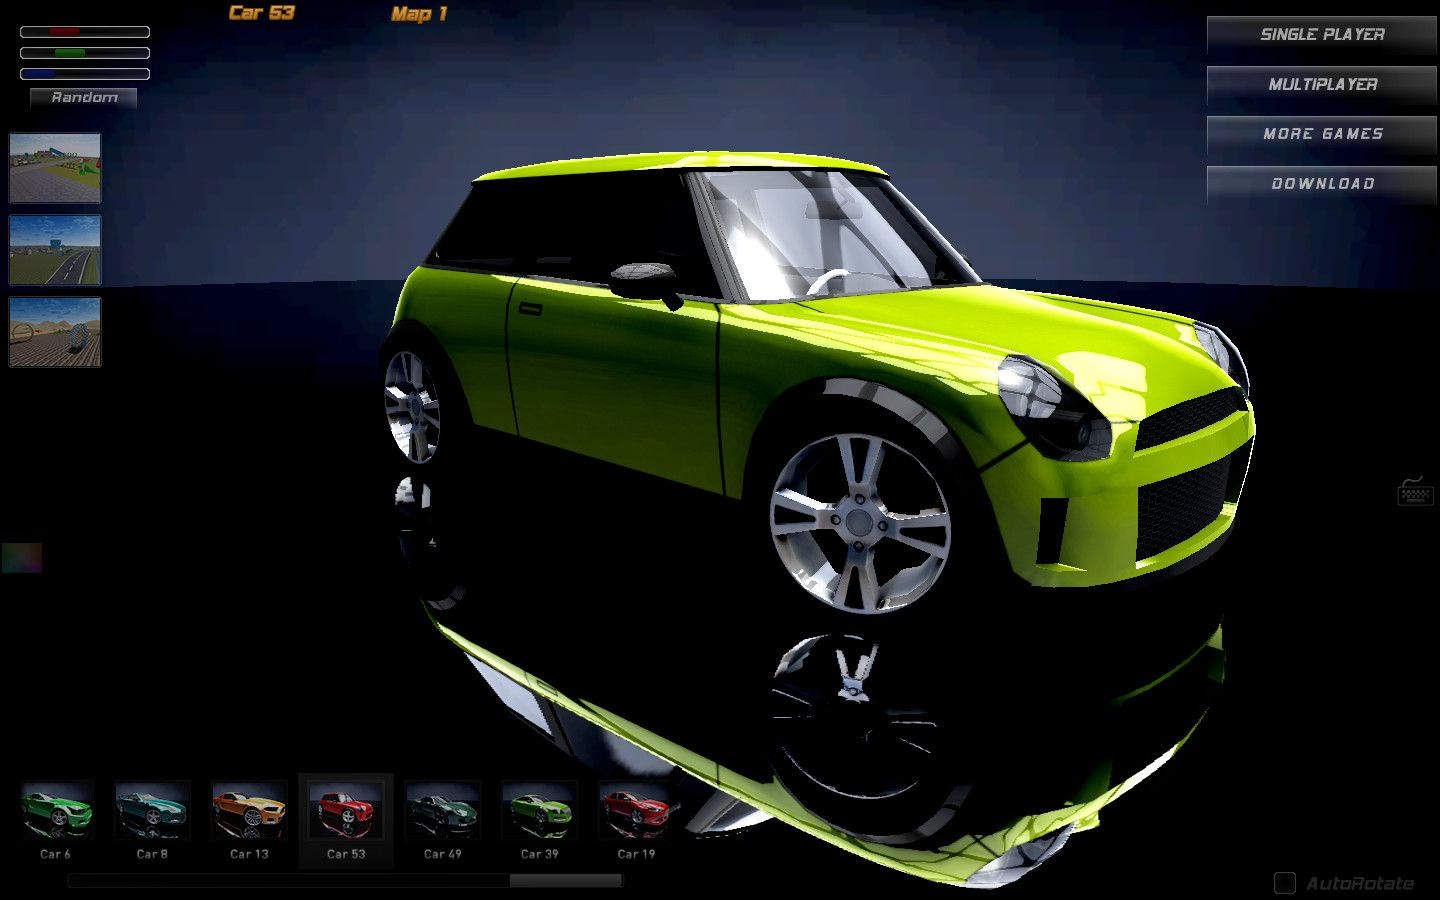 You can play Madalin Stunt Cars 2 either by yourself or in